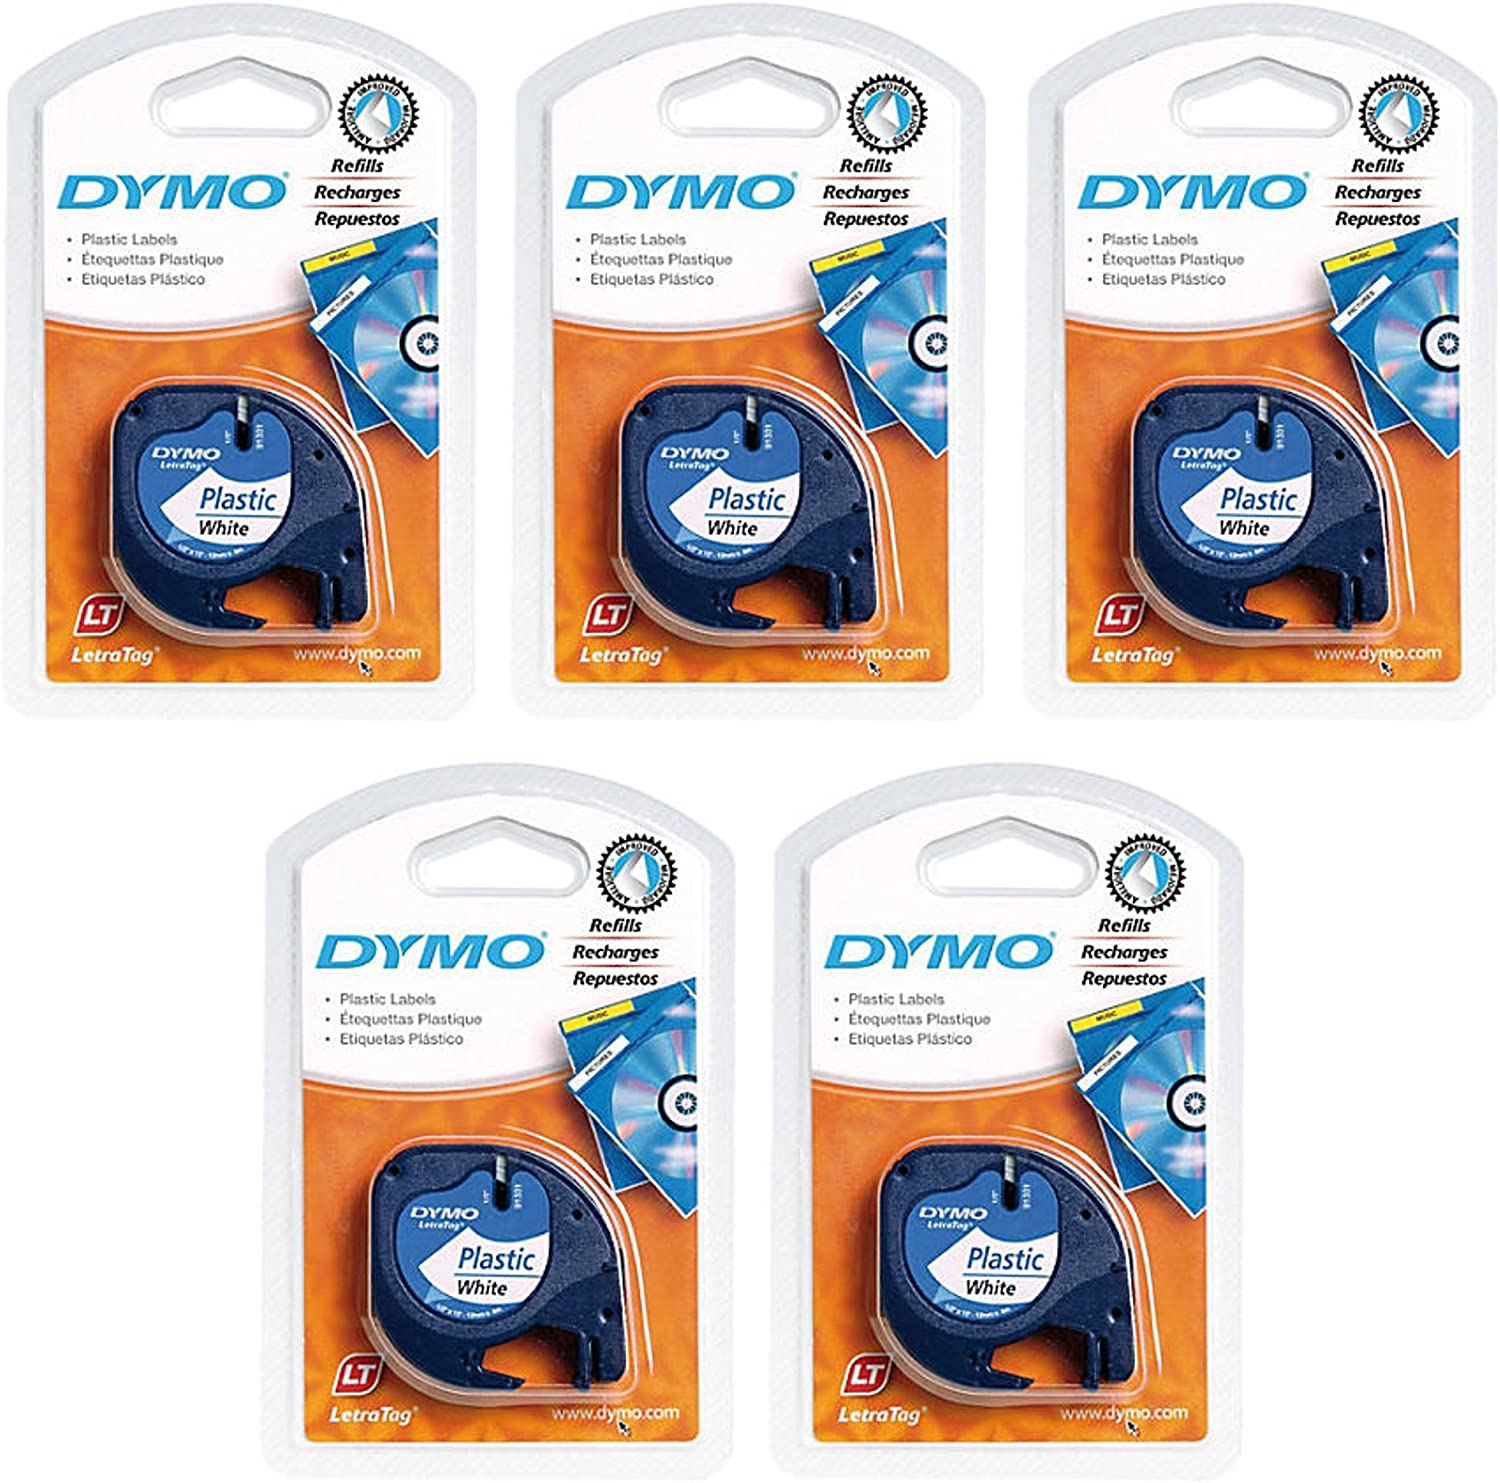 DYMO 91331 LT Plastic Tape Cassette for LetraTag Label Makers, Packaged in Easy-to-Load Cassettes, 1/2-inch x 13 Feet, Black on White, Pack of 5